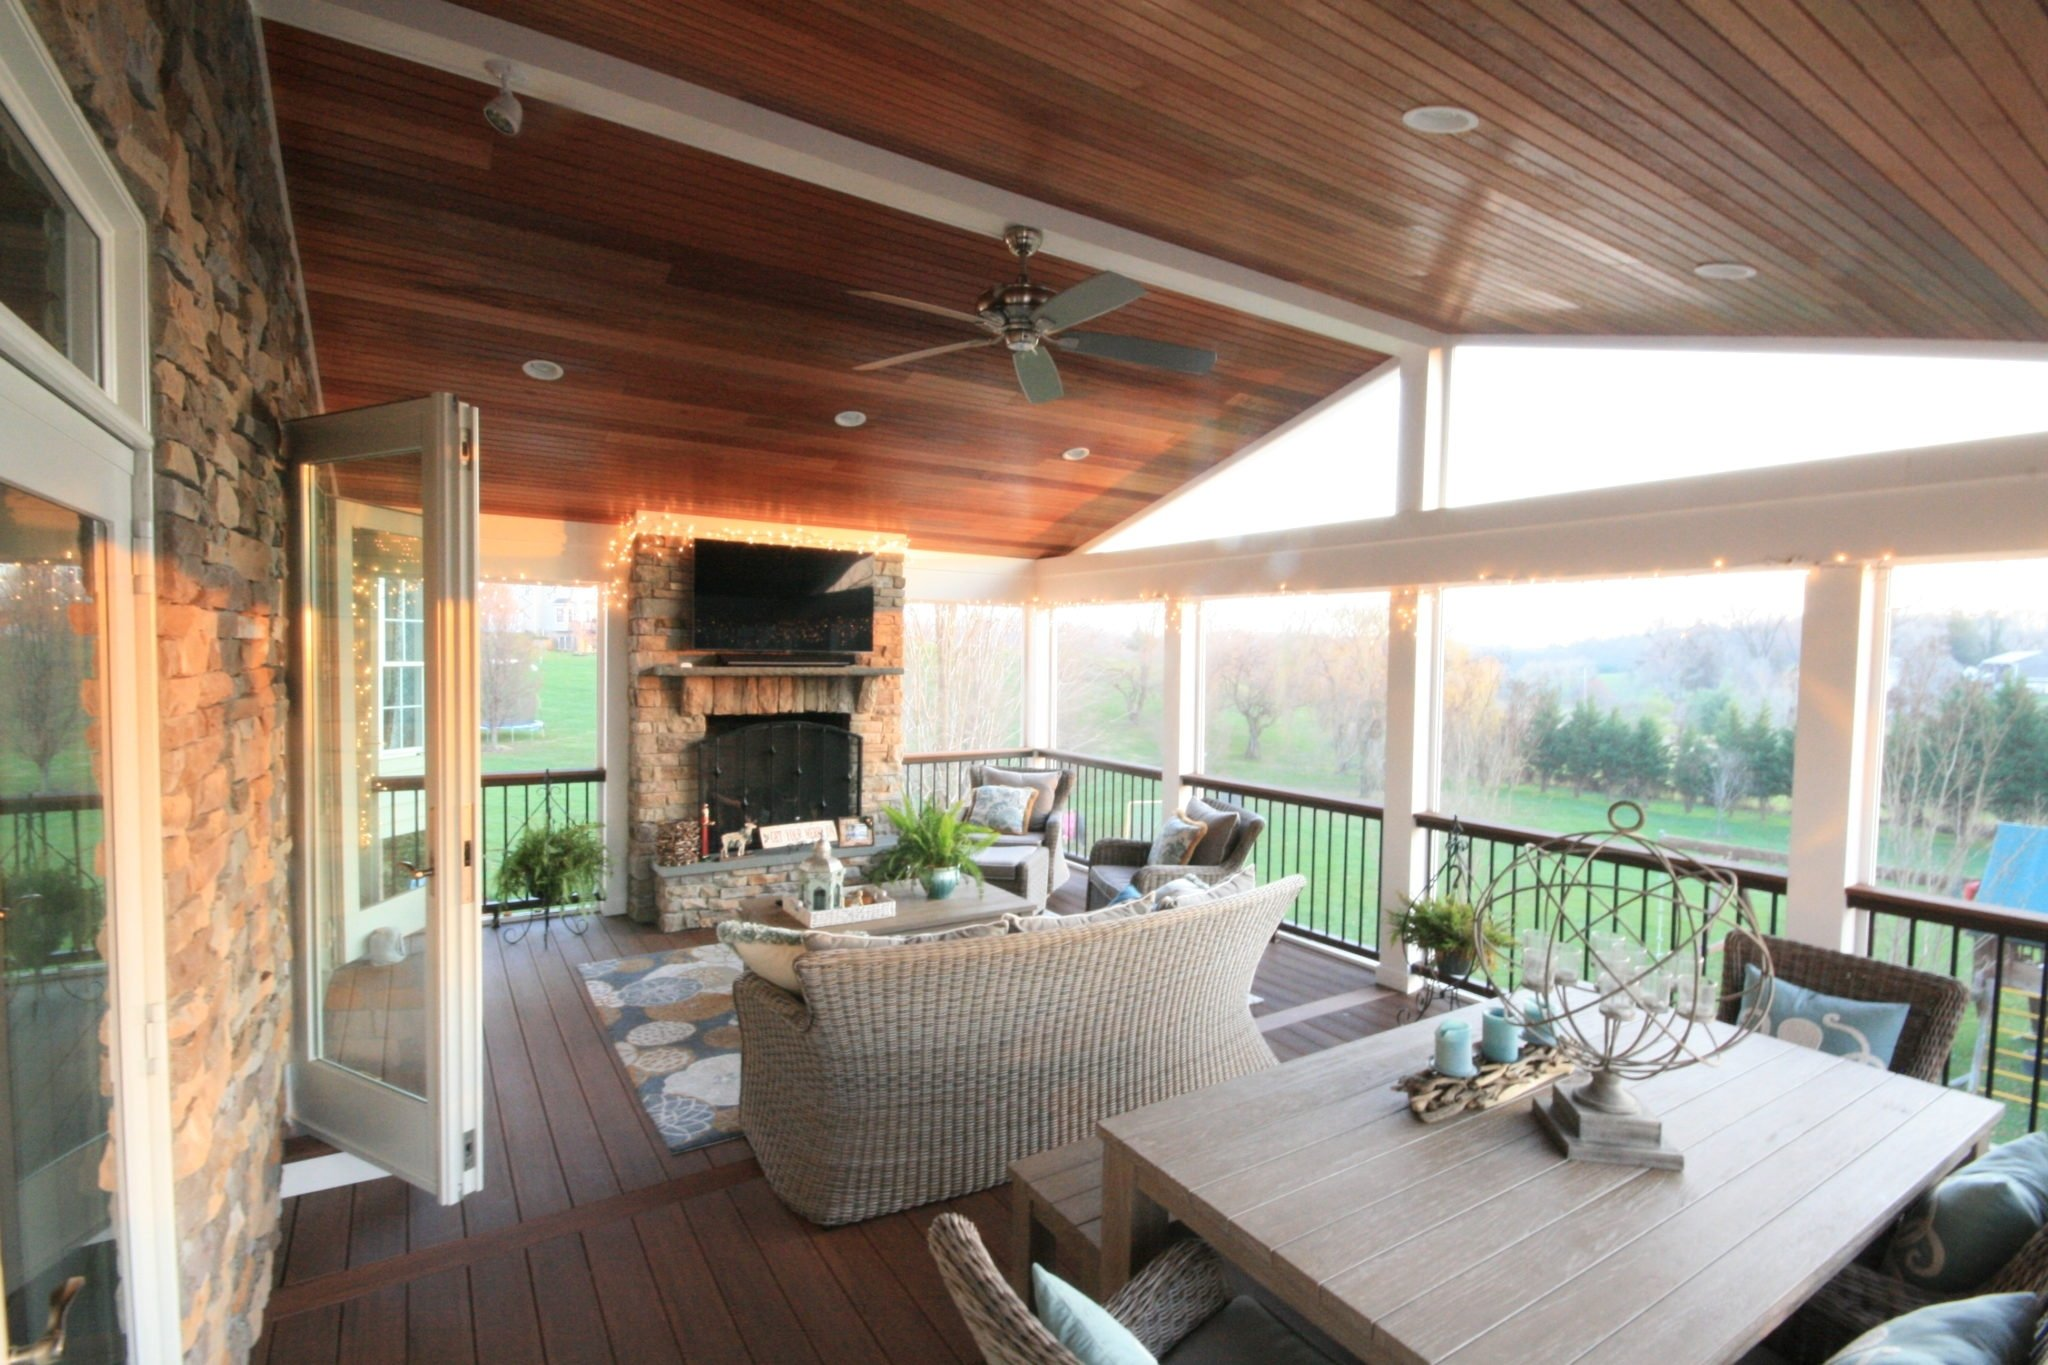 10 Most Recommended Screened In Porch Design Ideas screen porch design ideas maryland intended for screened in with 2021